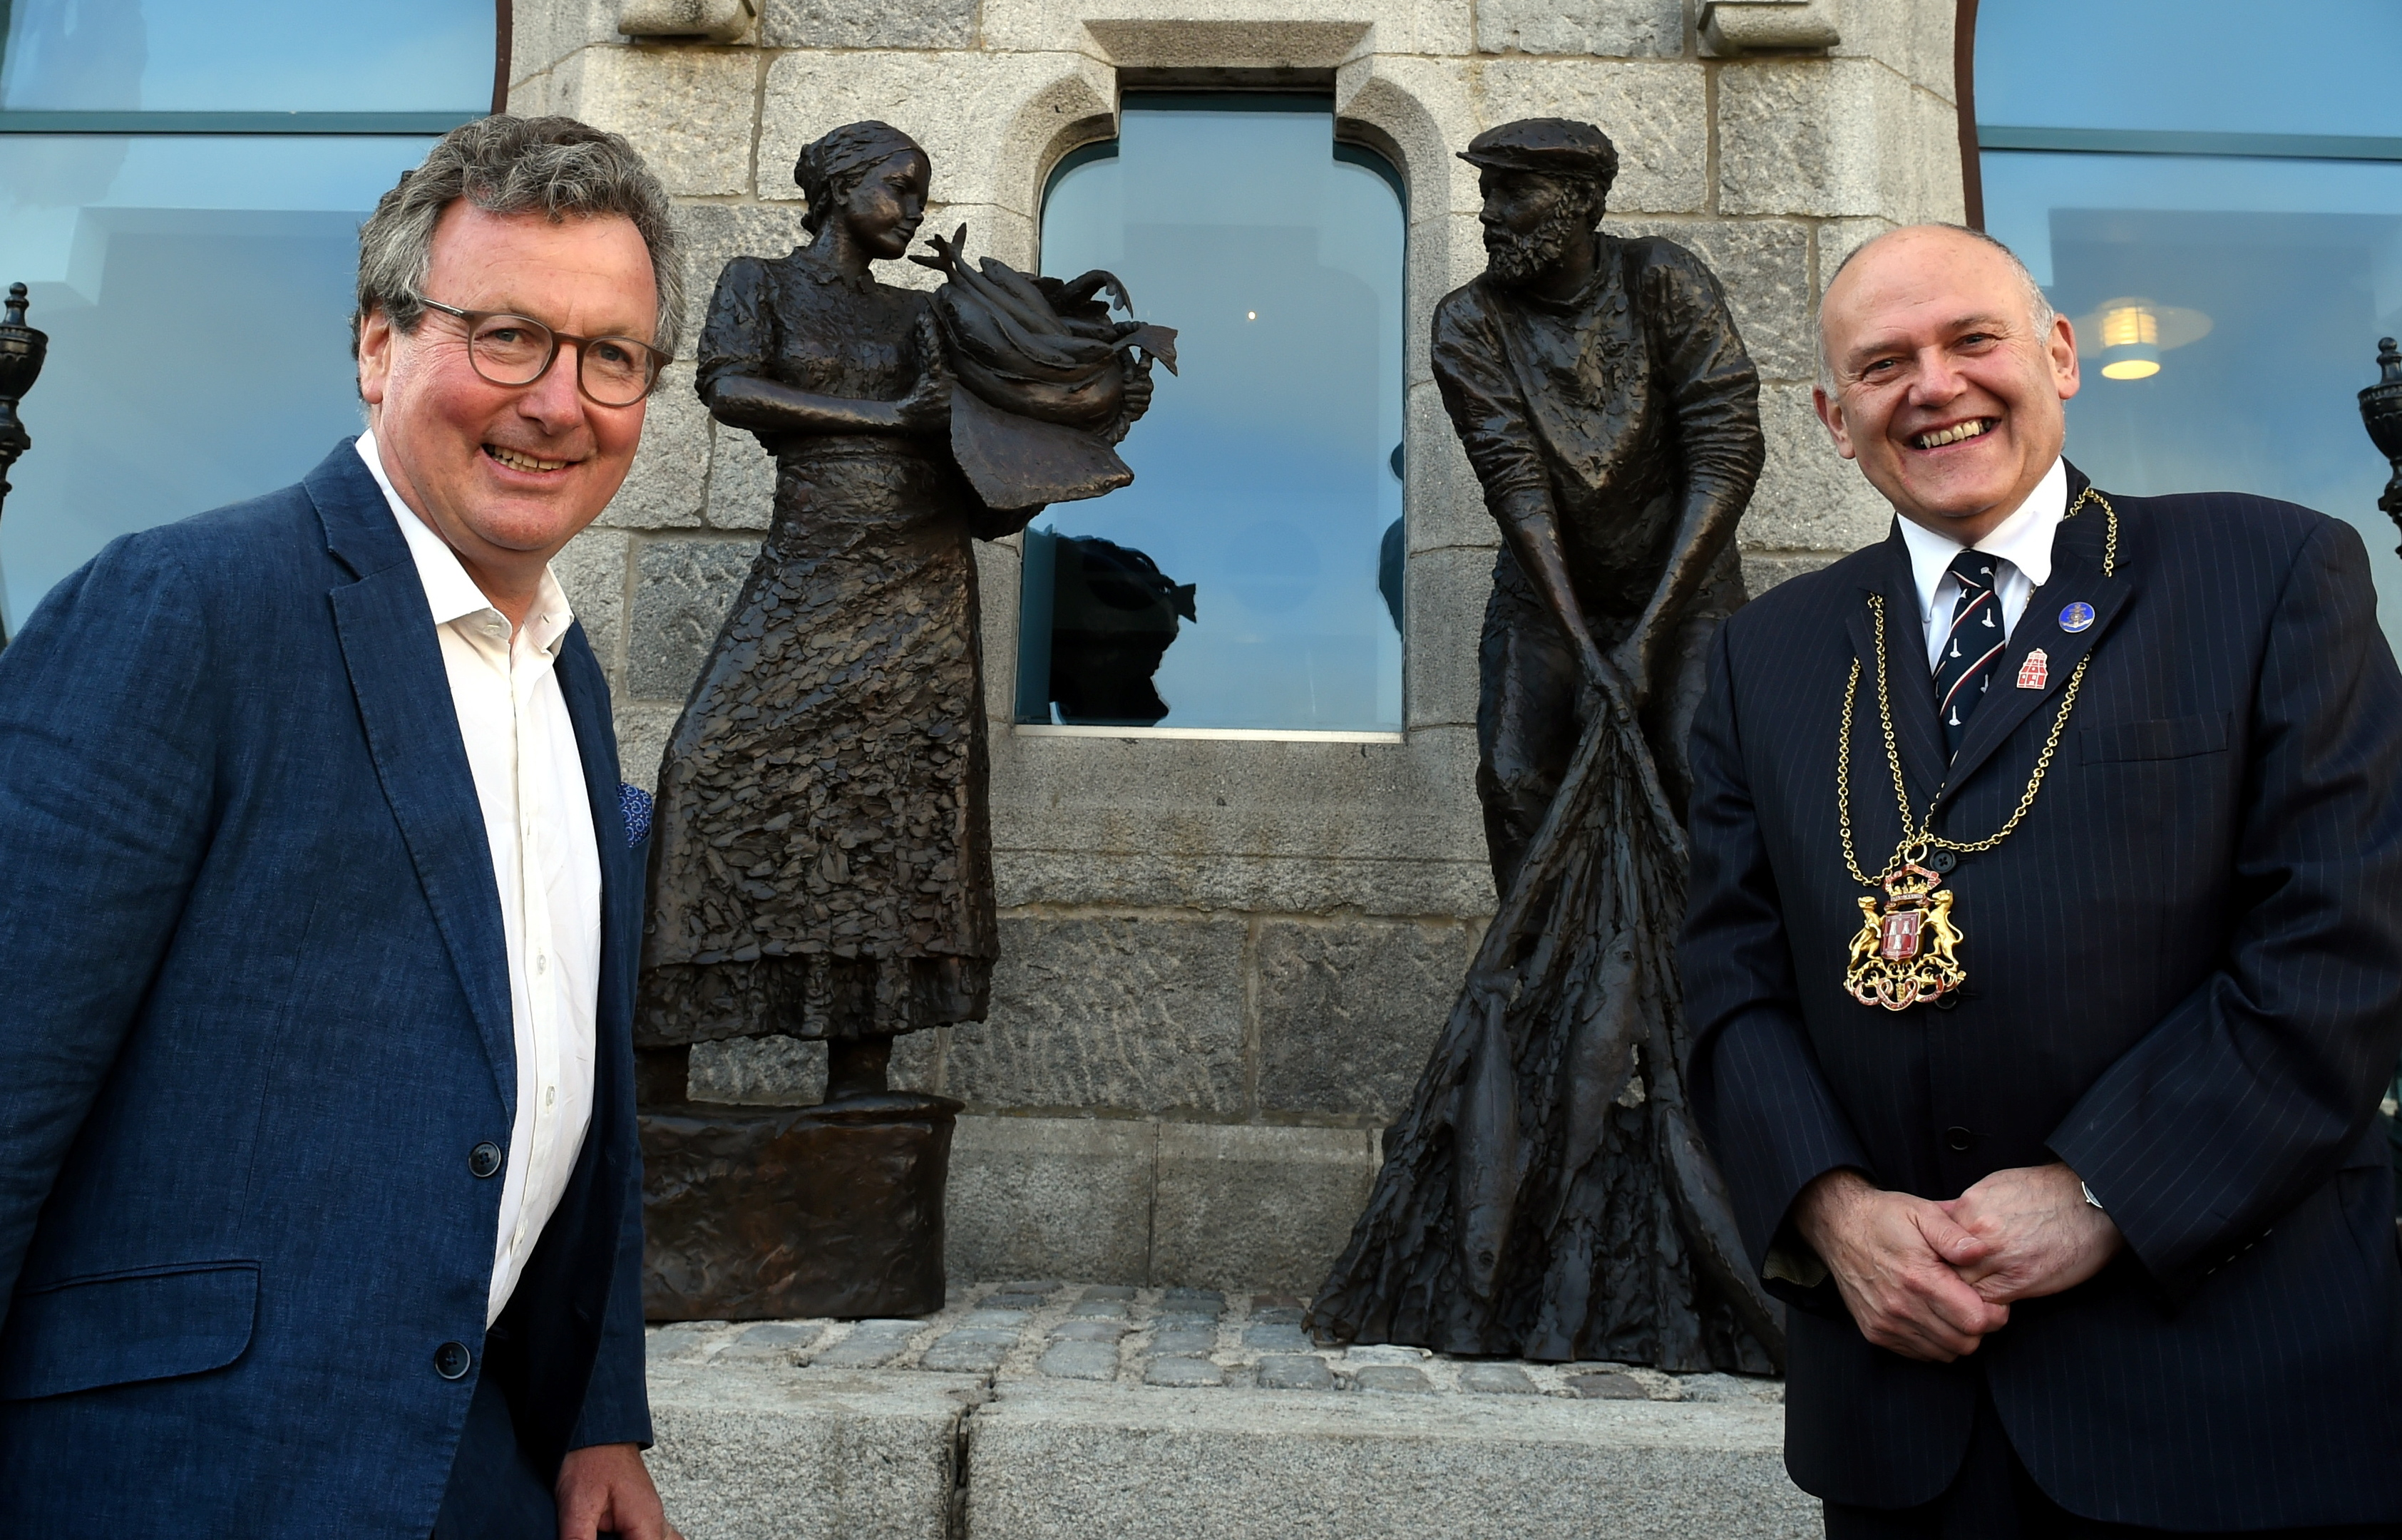 Sculptor David Williams-Ellis and Lord Provost Barney Crockett in front of Aberdeen's fishing memorial at the Maritime Museum. Picture by Jim Irvine